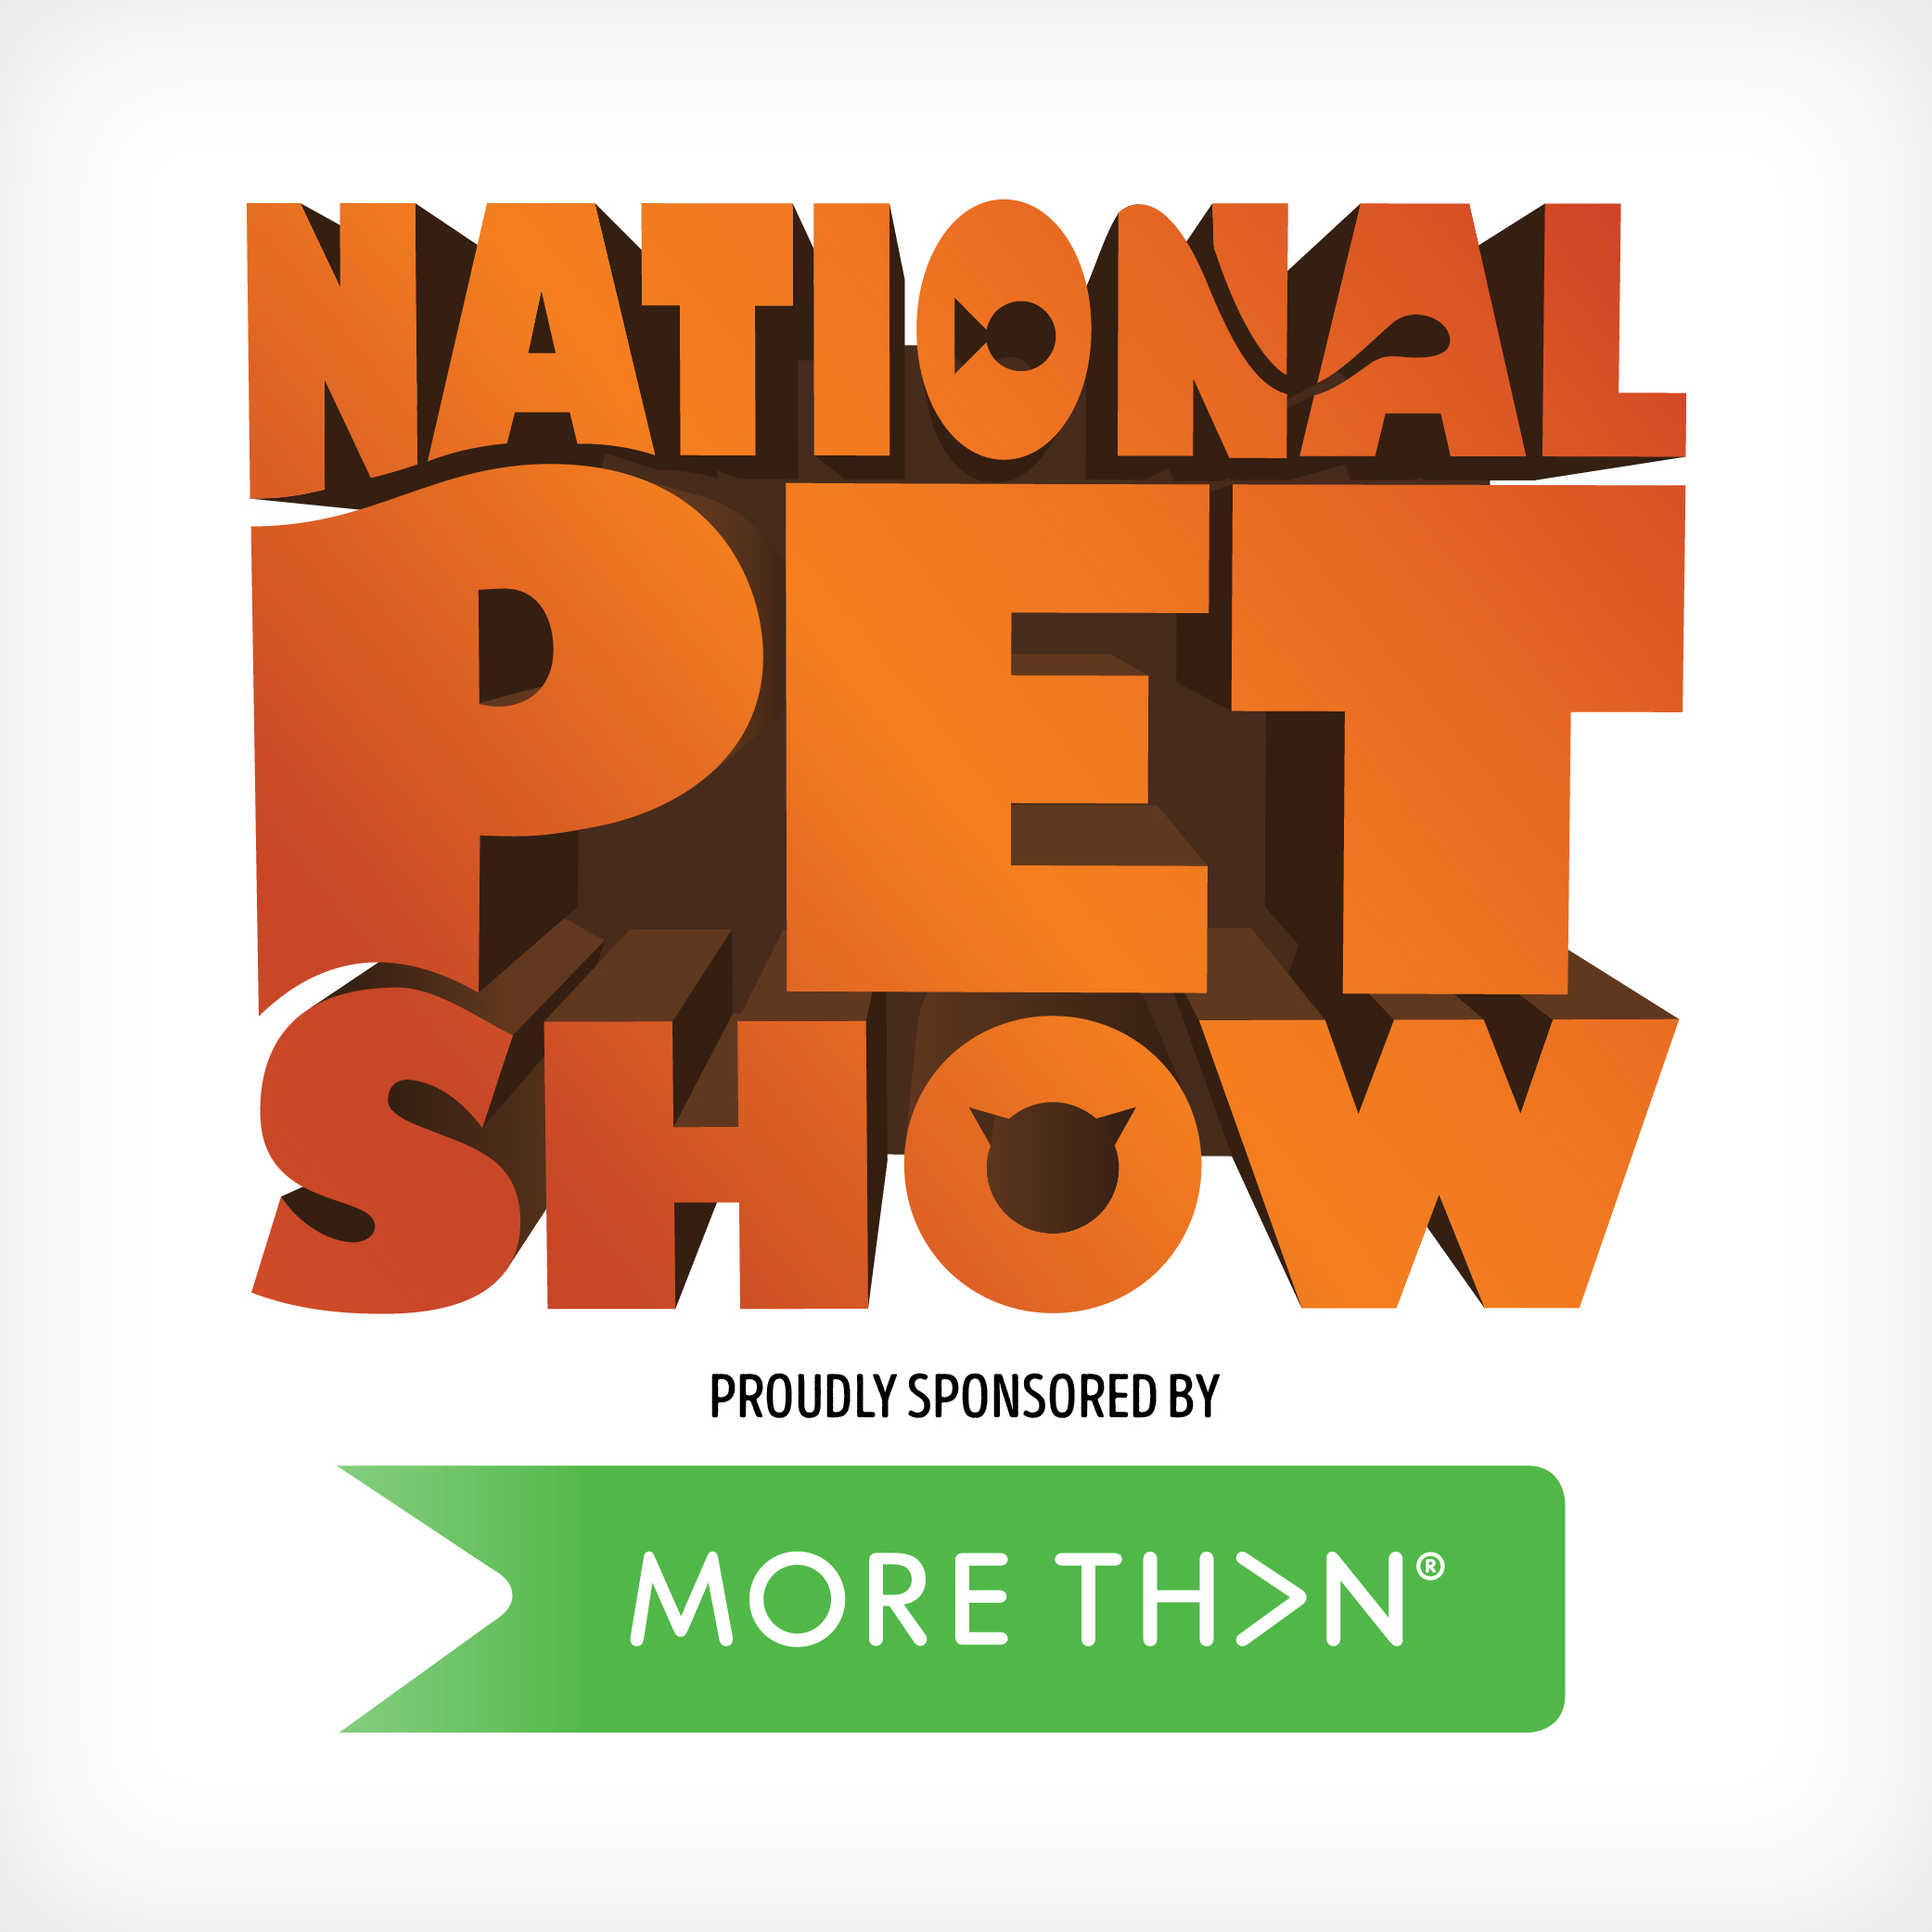 National Pet Show.jpg